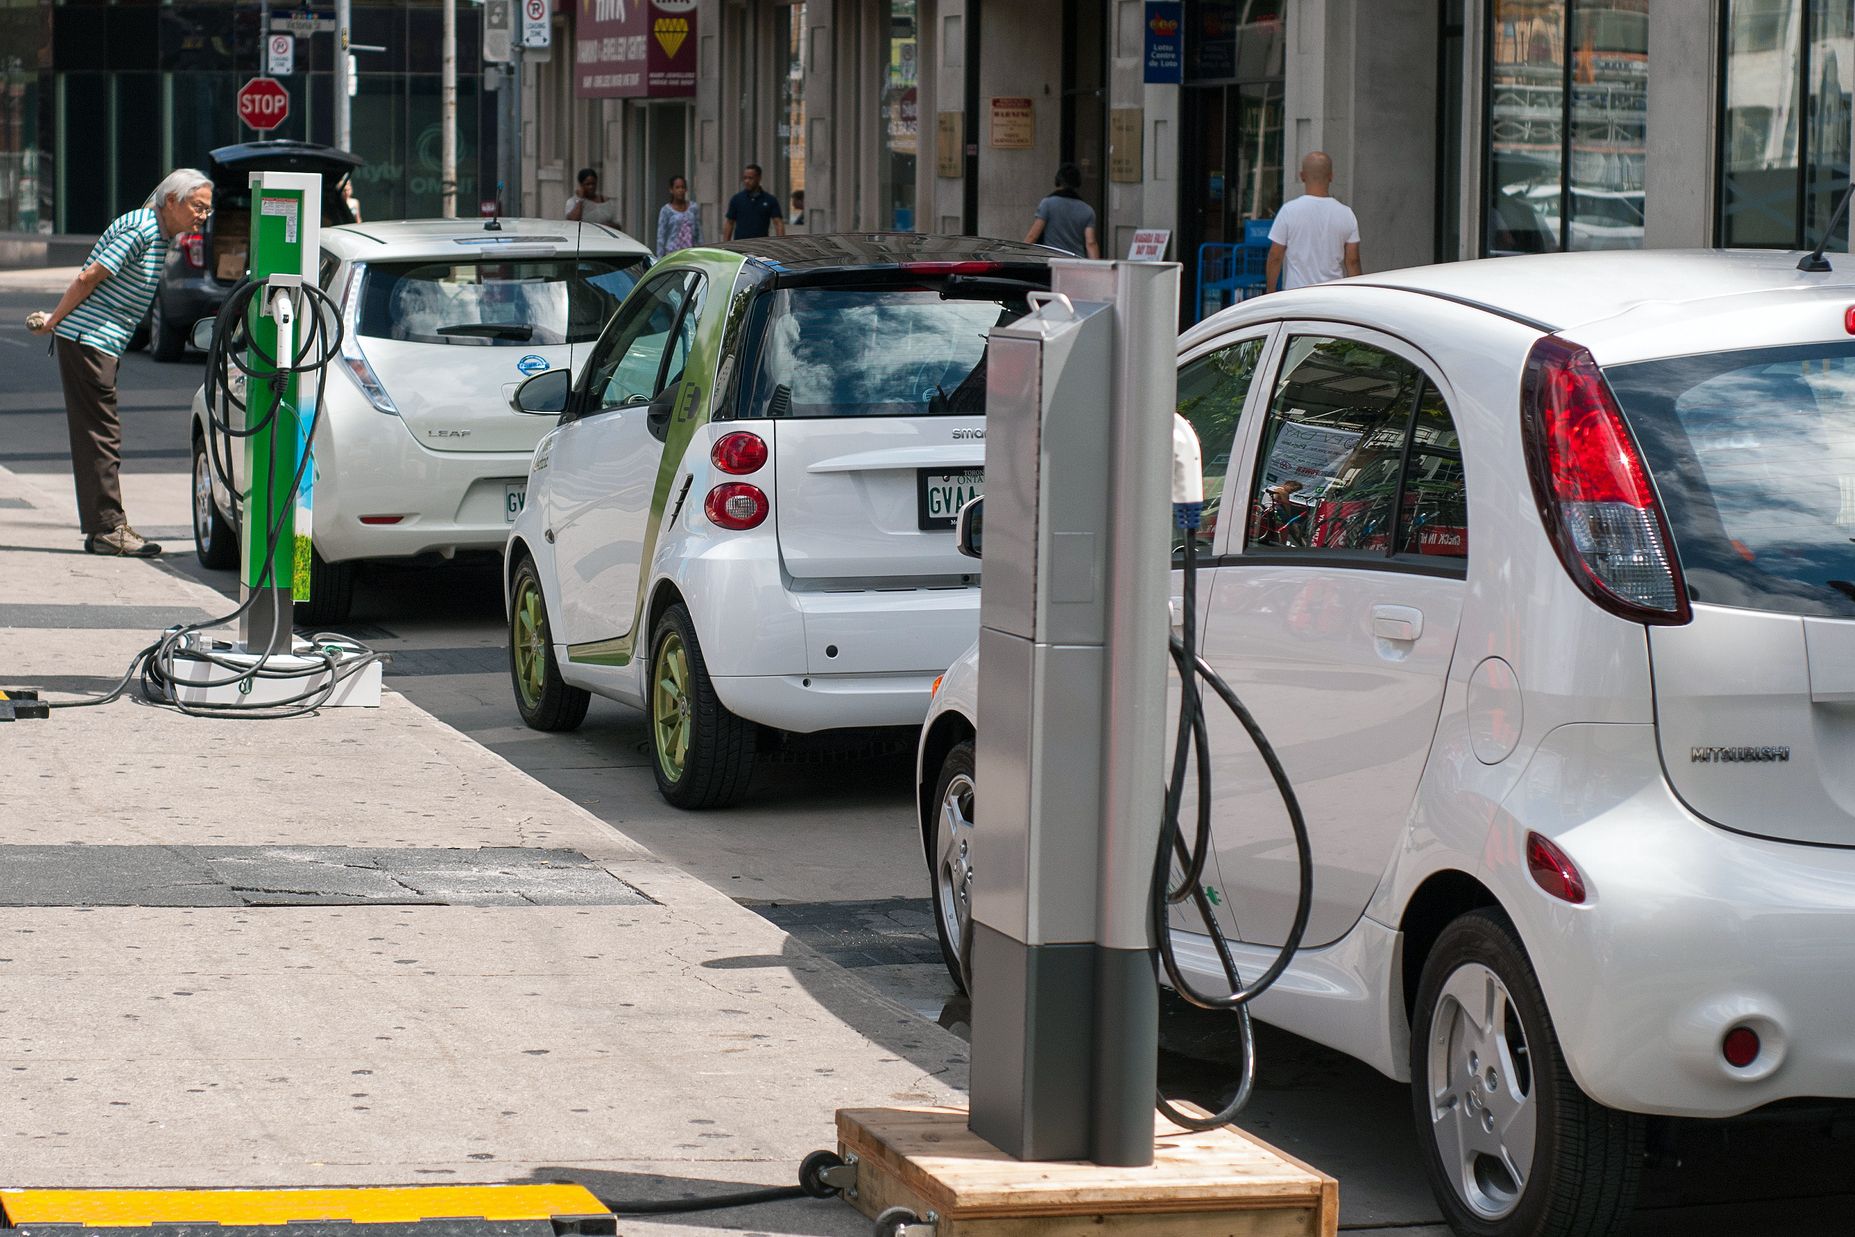 Charging Electric Cars on the Street